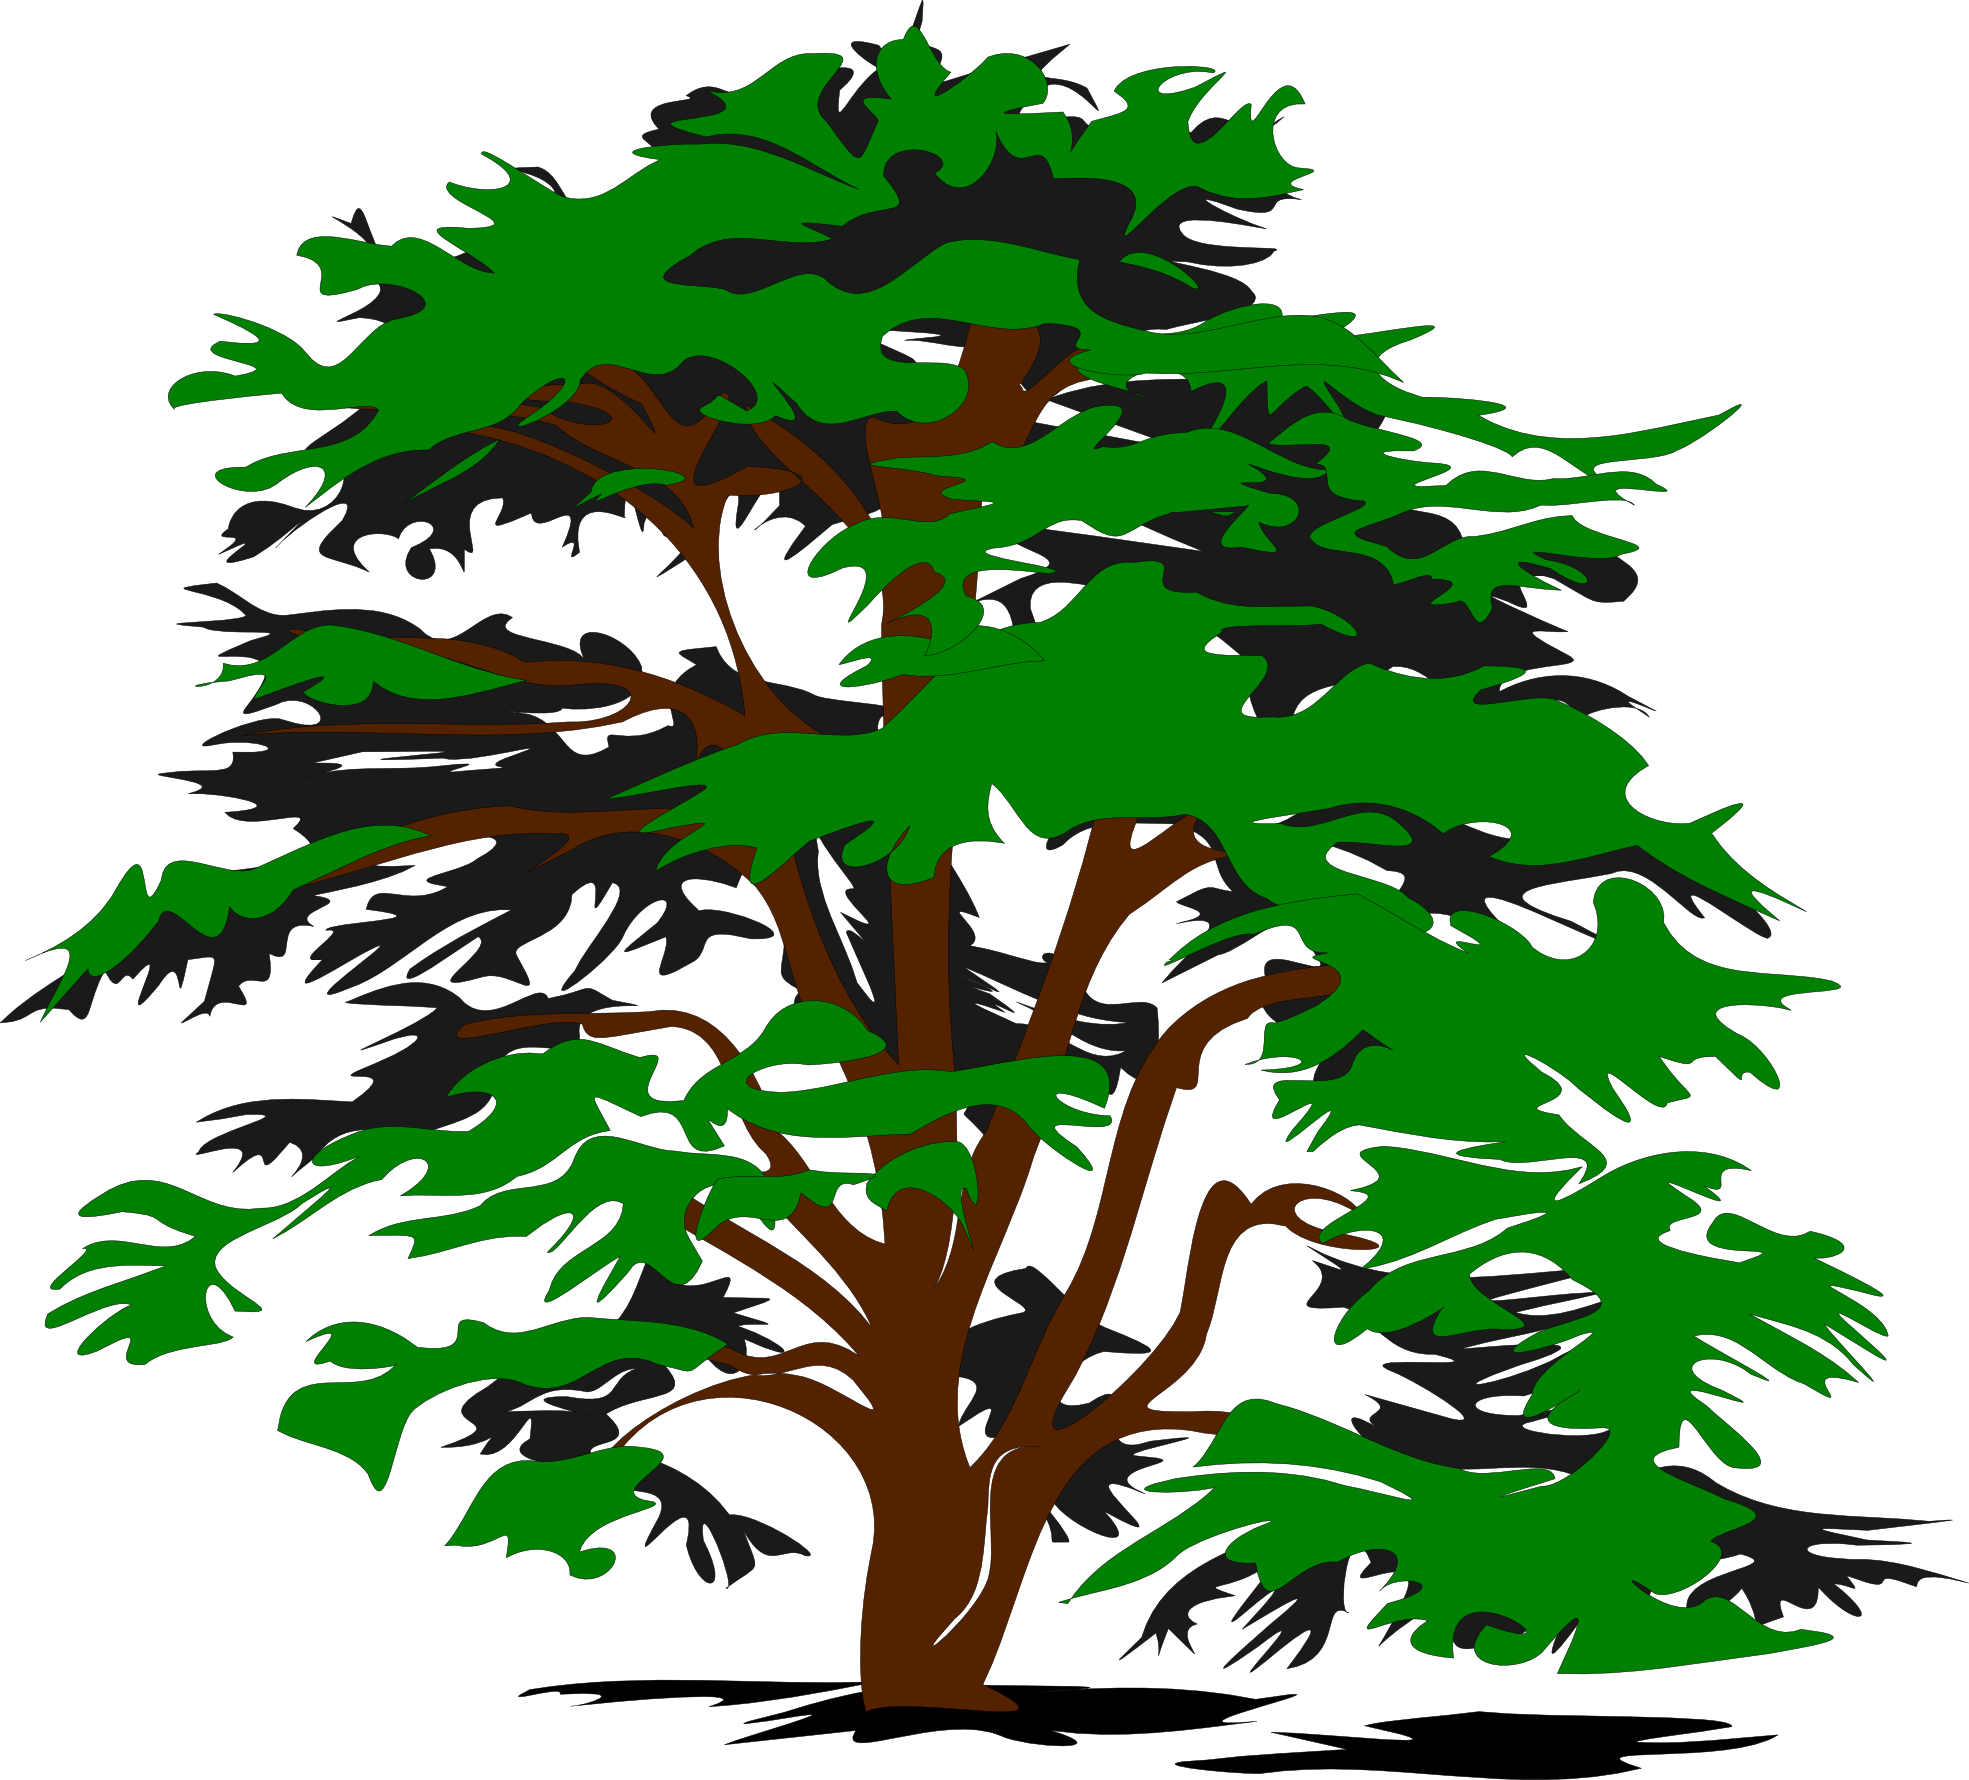 Tree free clipart image free library Free Tree Vector Png, Download Free Clip Art, Free Clip Art on ... image free library